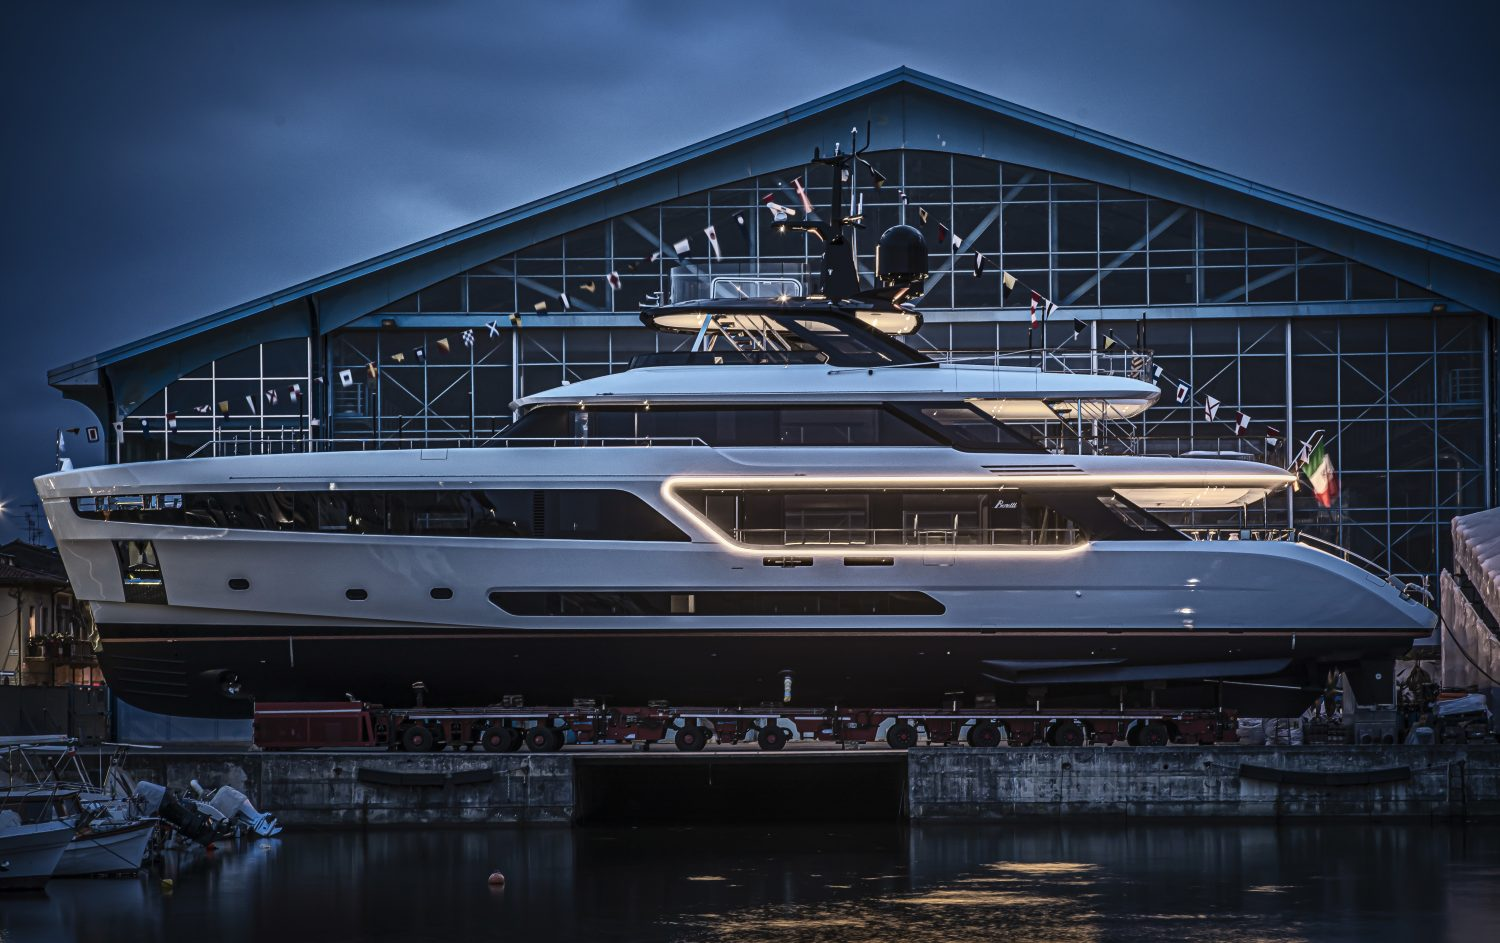 Benetti Motopanfilo 37M being launched